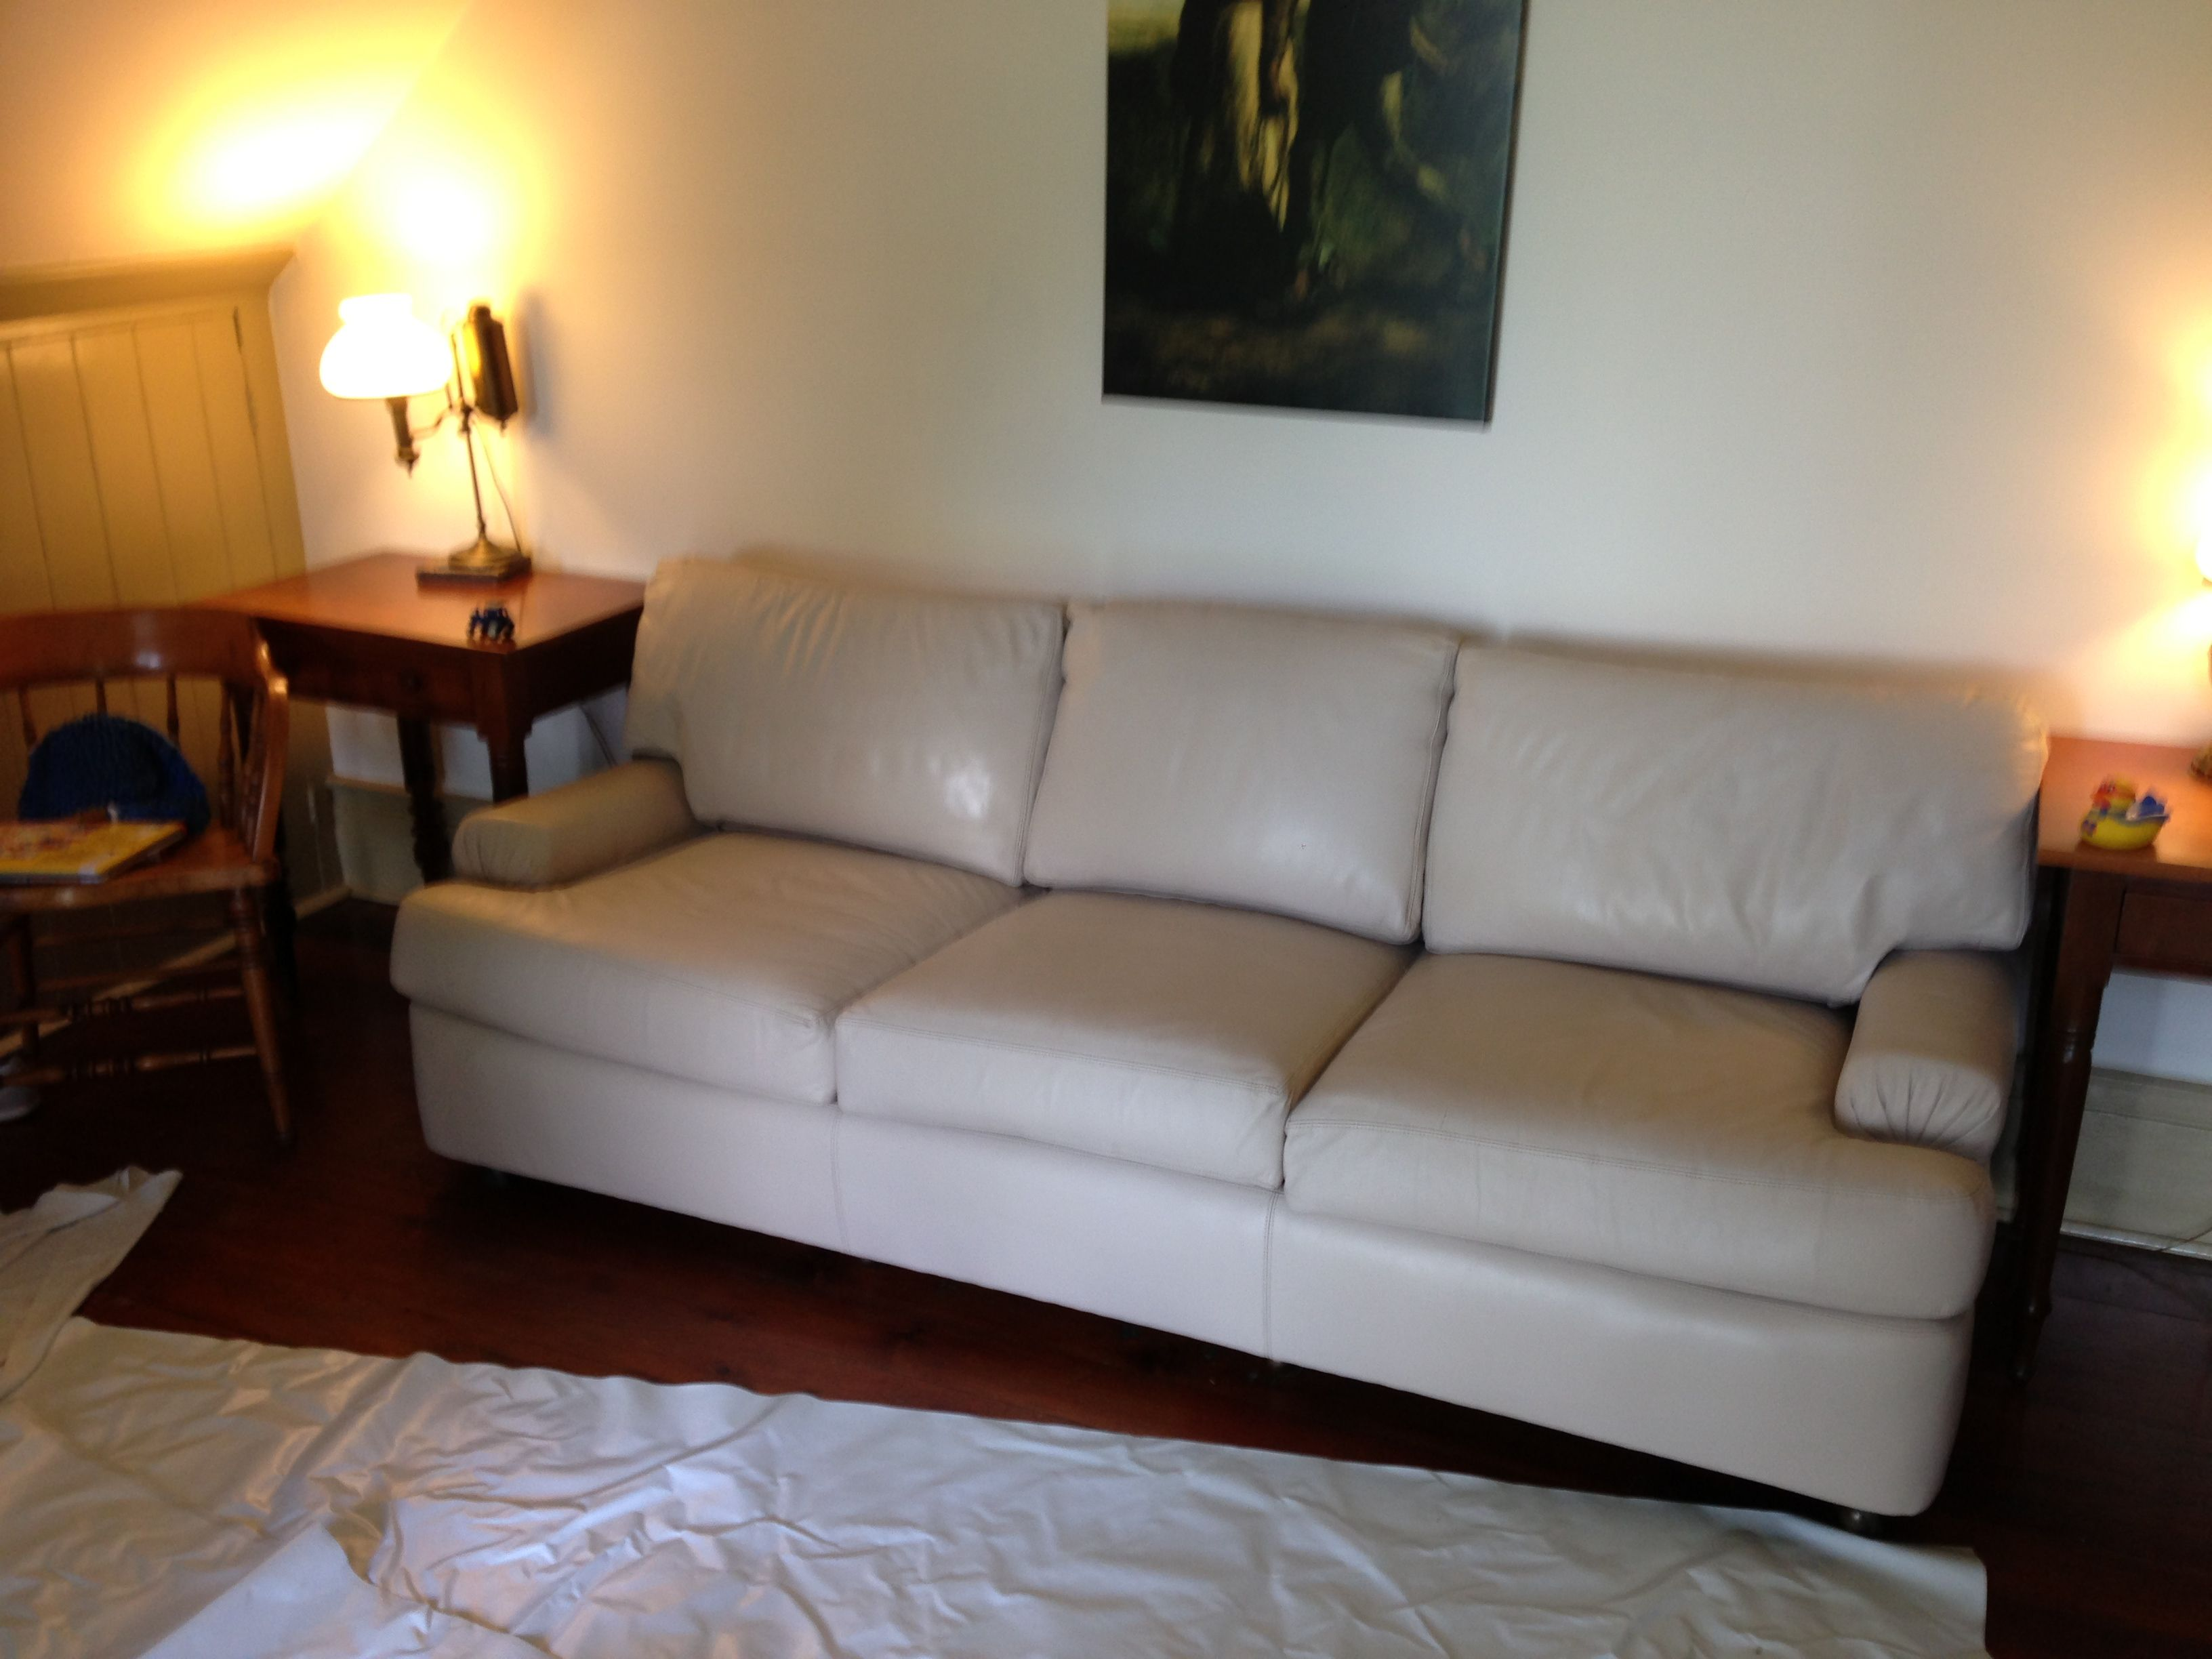 How To Clean A Leather Couch.  Vacuum  Dove Sensitive Skin Body Wash  Rags,  Towel  Magic Eraser  Elbow Grease